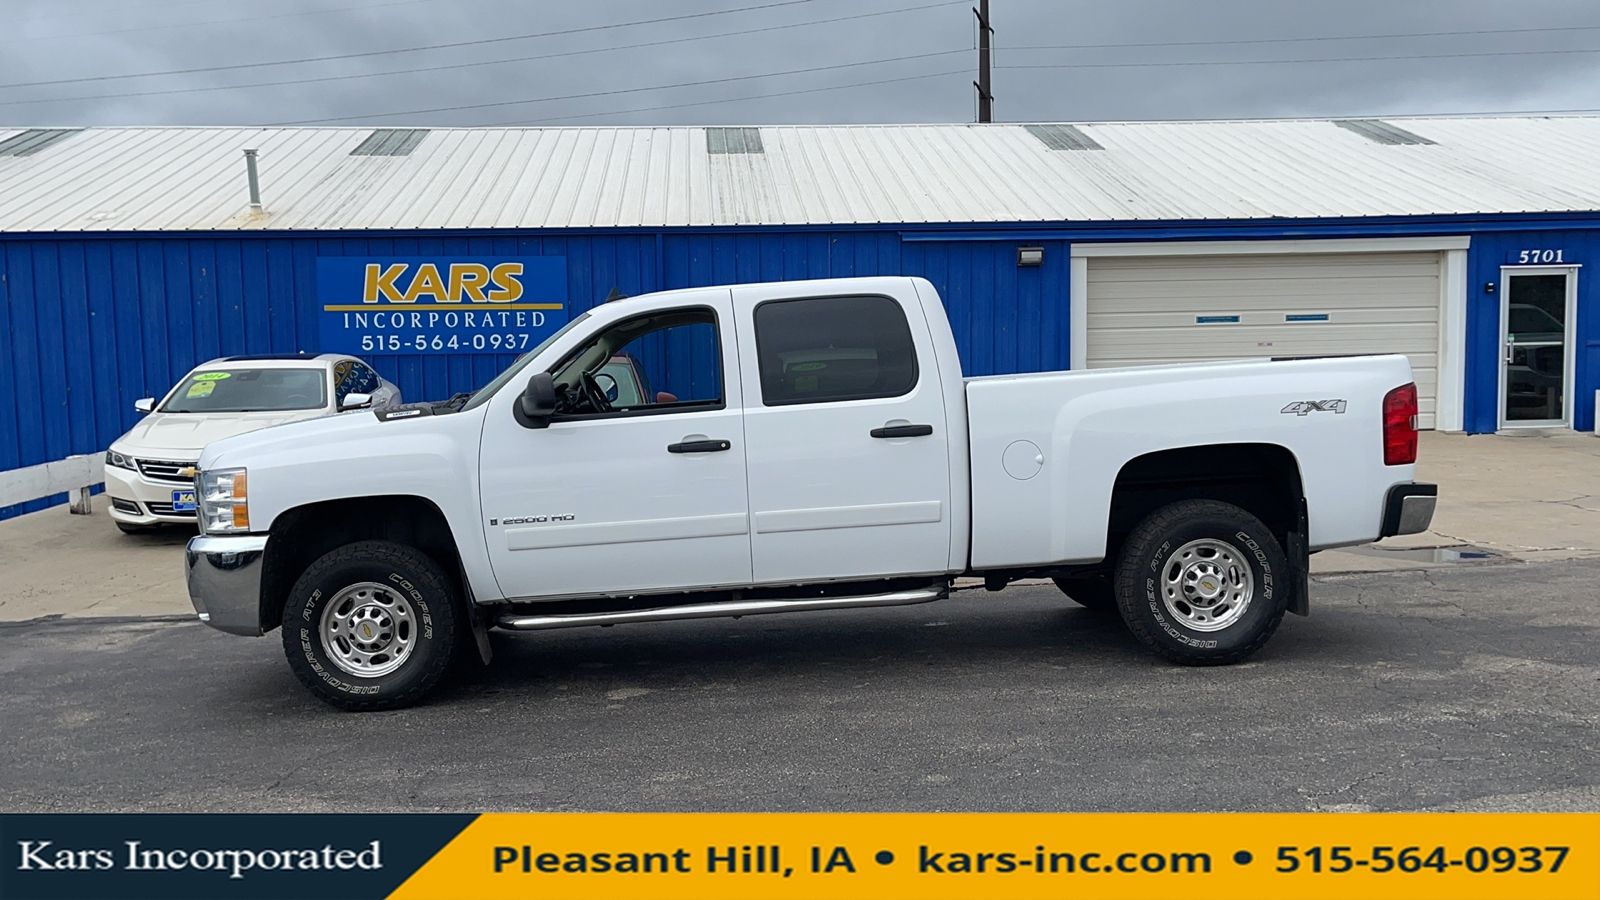 2007 Chevrolet Silverado 2500HD HEAVY DUTY 4WD Crew Cab  - 729295P  - Kars Incorporated